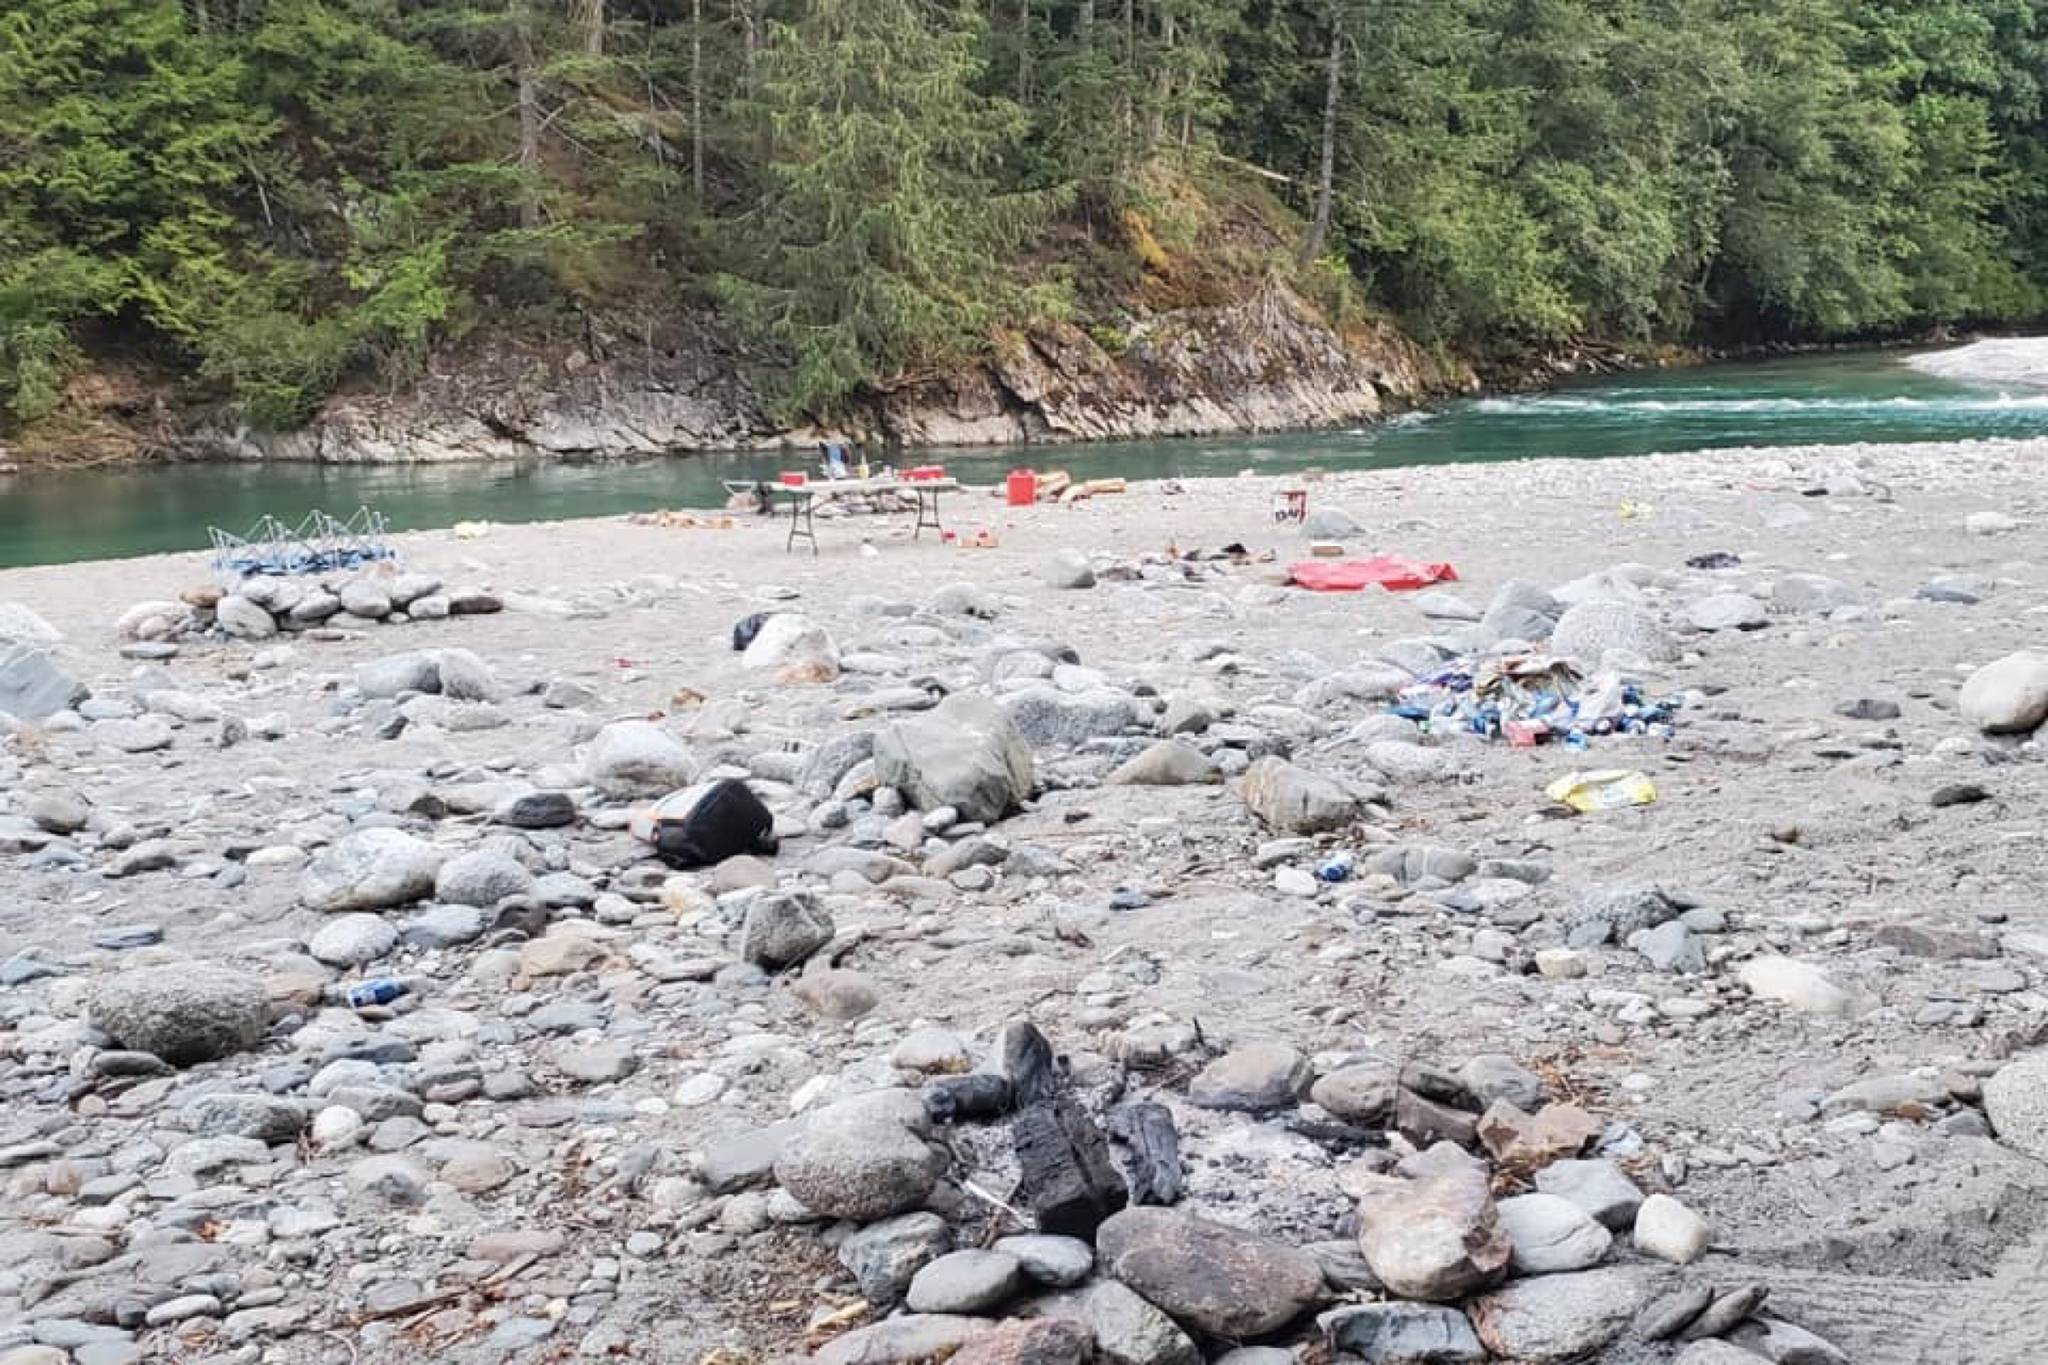 Dee Hudson's Facebook post of copious amounts of garbage at a Harrison campsite has garnered online attention this week. Hudson's group cleaned up as much as they could; the Facebook community expressed outrage and disgust at the partygoers' behaviour. (Contributed photos/Dee Hudson)